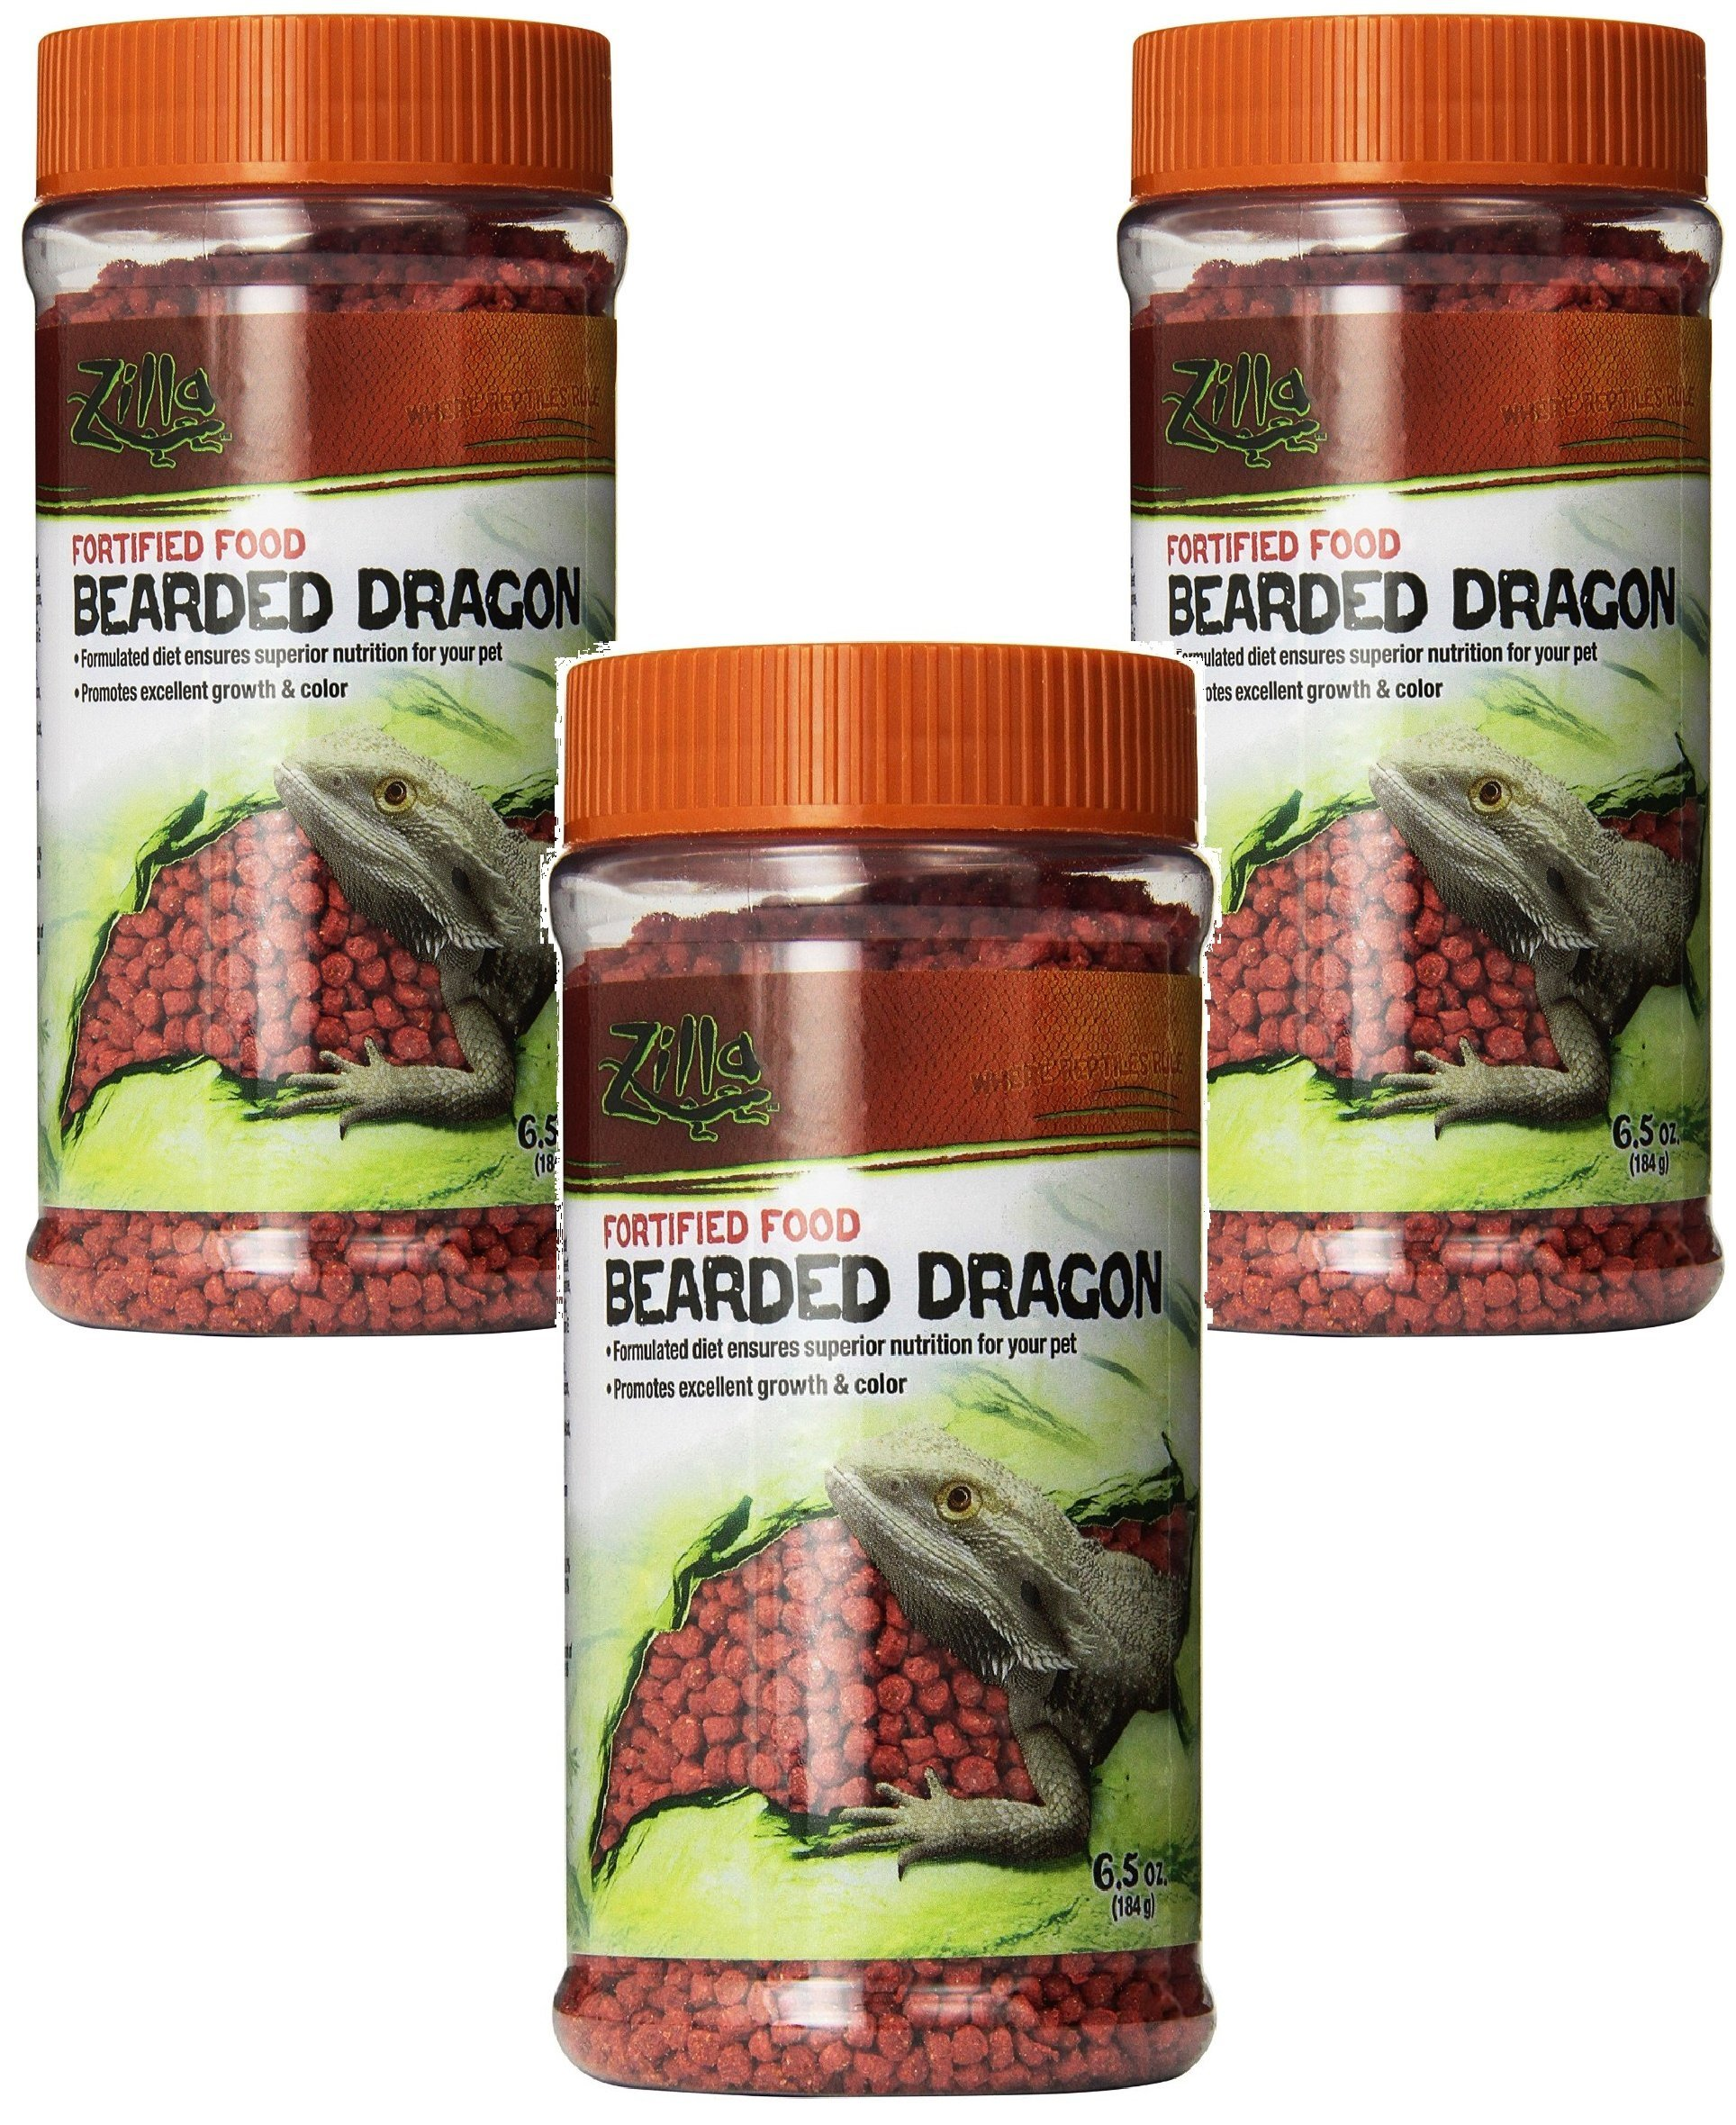 Zilla Reptile Food Bearded Dragon Fortified, 6.5-Ounce (3 Pack) by Zilla (Image #1)